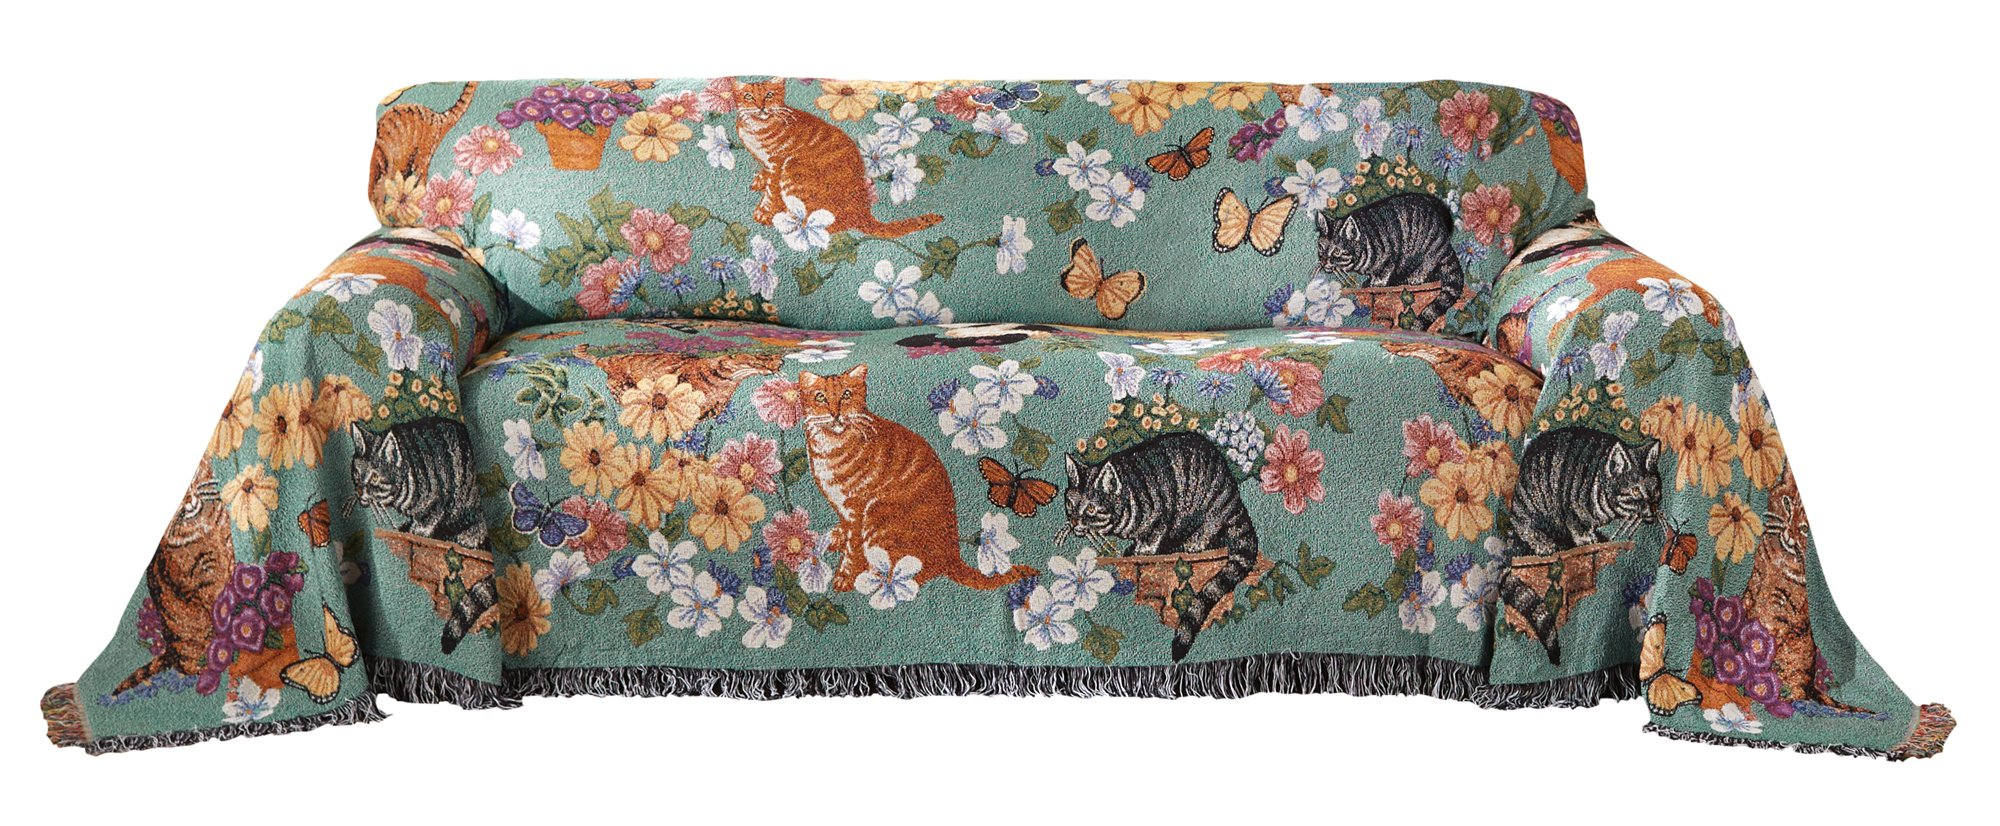 Furniture Cover - Sofa or Couch Furniture Protector, Soft Woven Fabric, Cat Themed Sofa Cover Shield Protects Fabric from Pet Stains and Every Day Wear